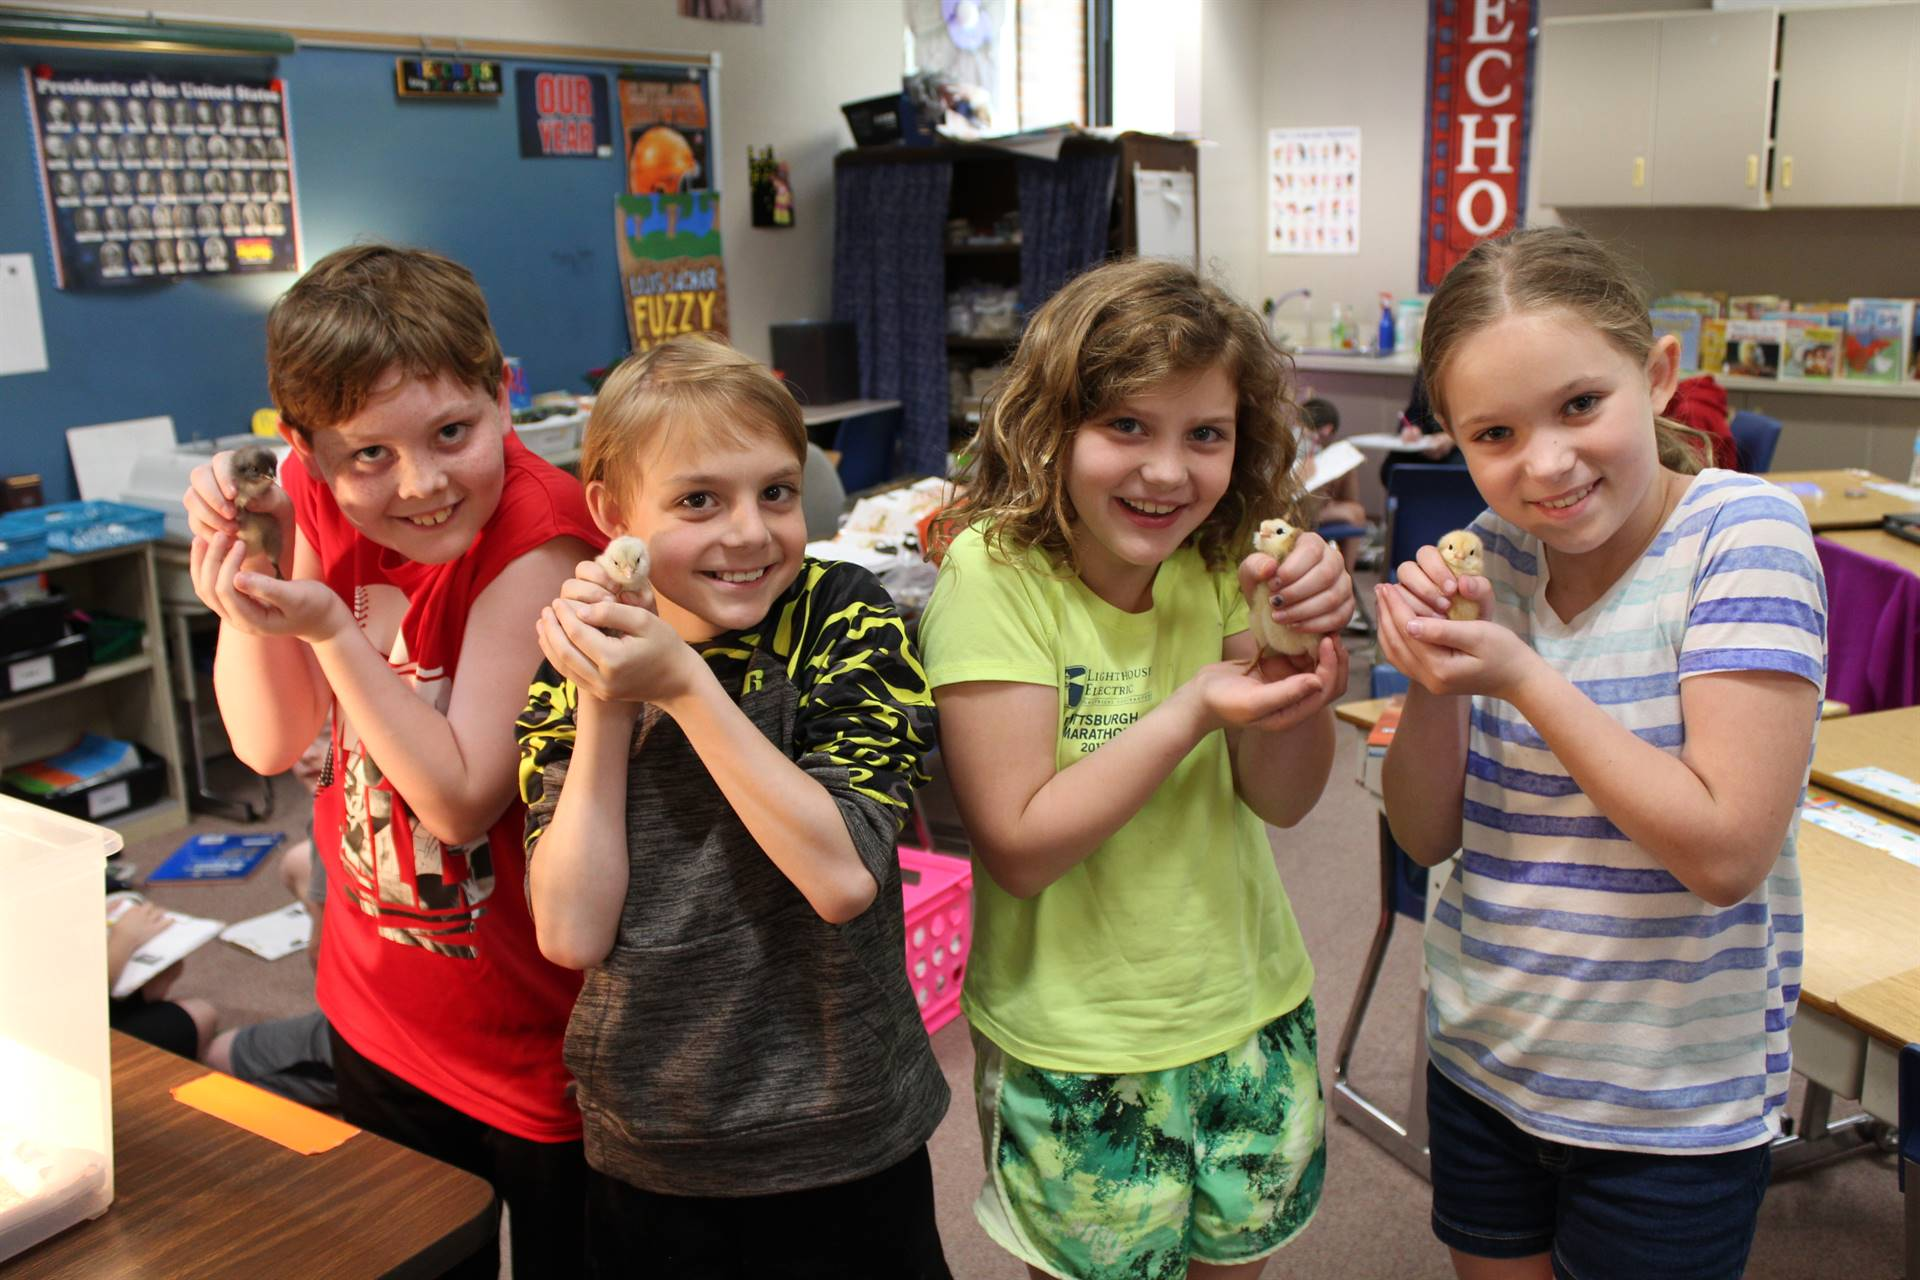 Four Fourth graders holding baby chicks